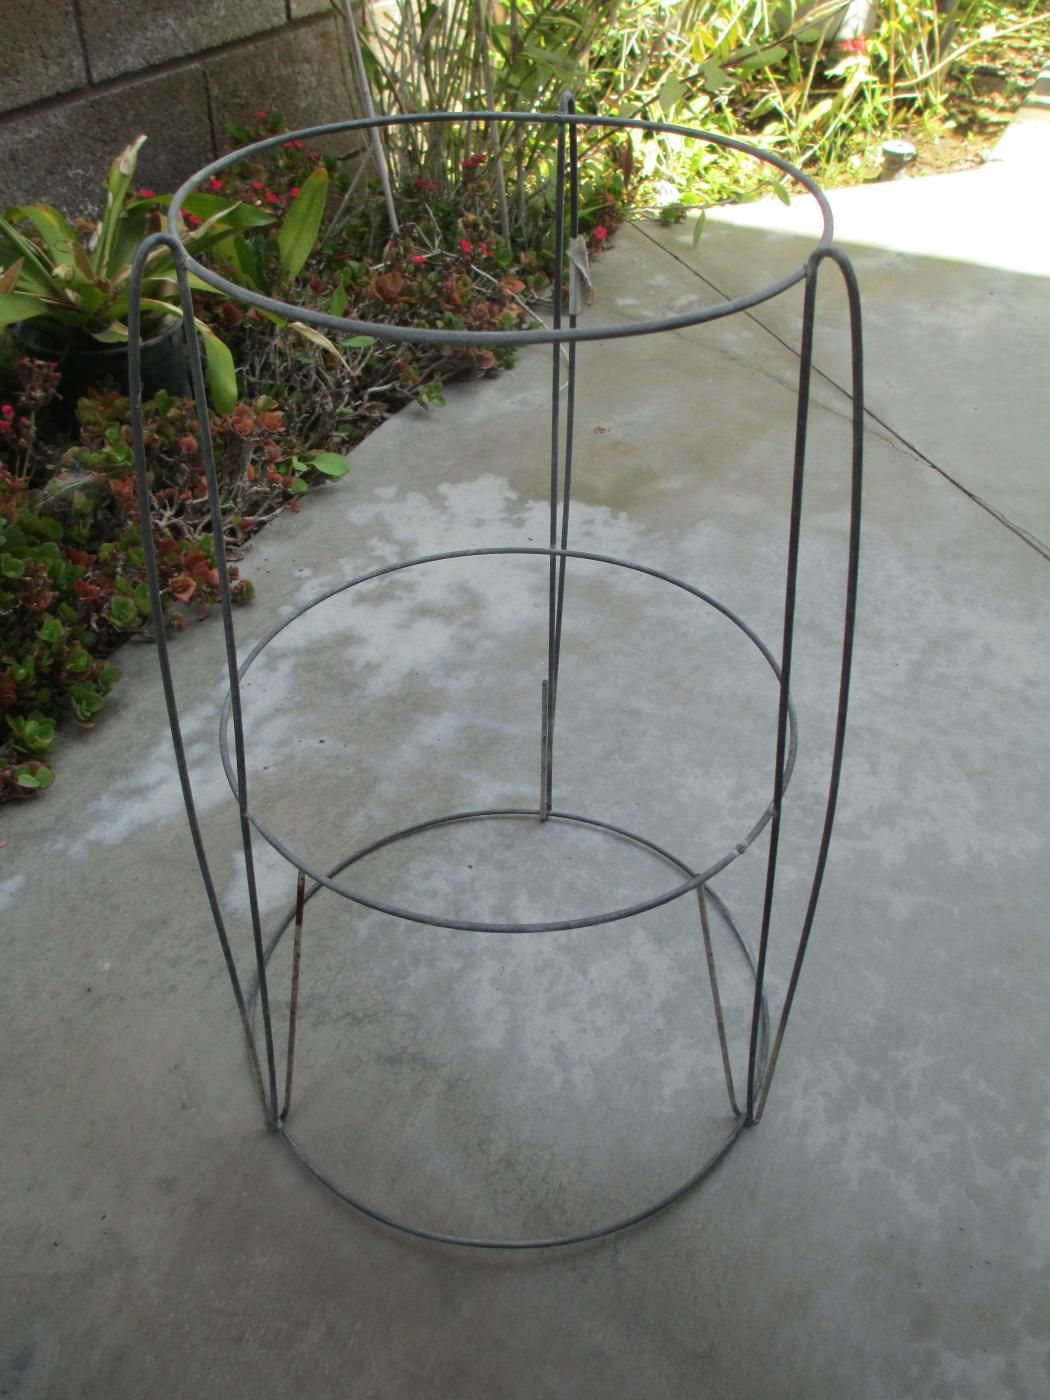 DIY Plant Stand Using Steel Wire Round Tomato Cage | Pinterest ...